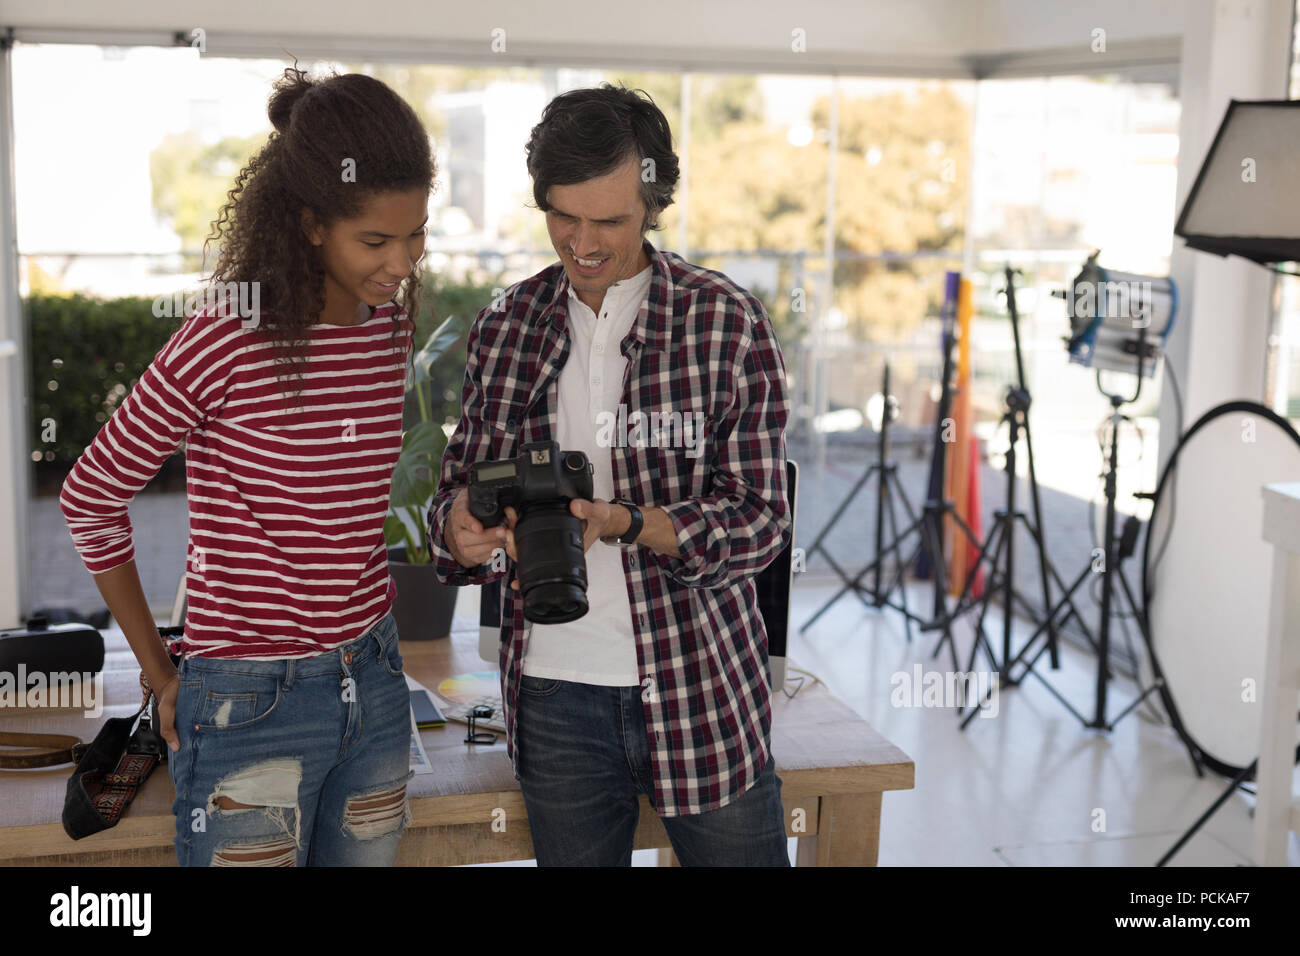 Photographer showing photos to fashion model on digital camera - Stock Image